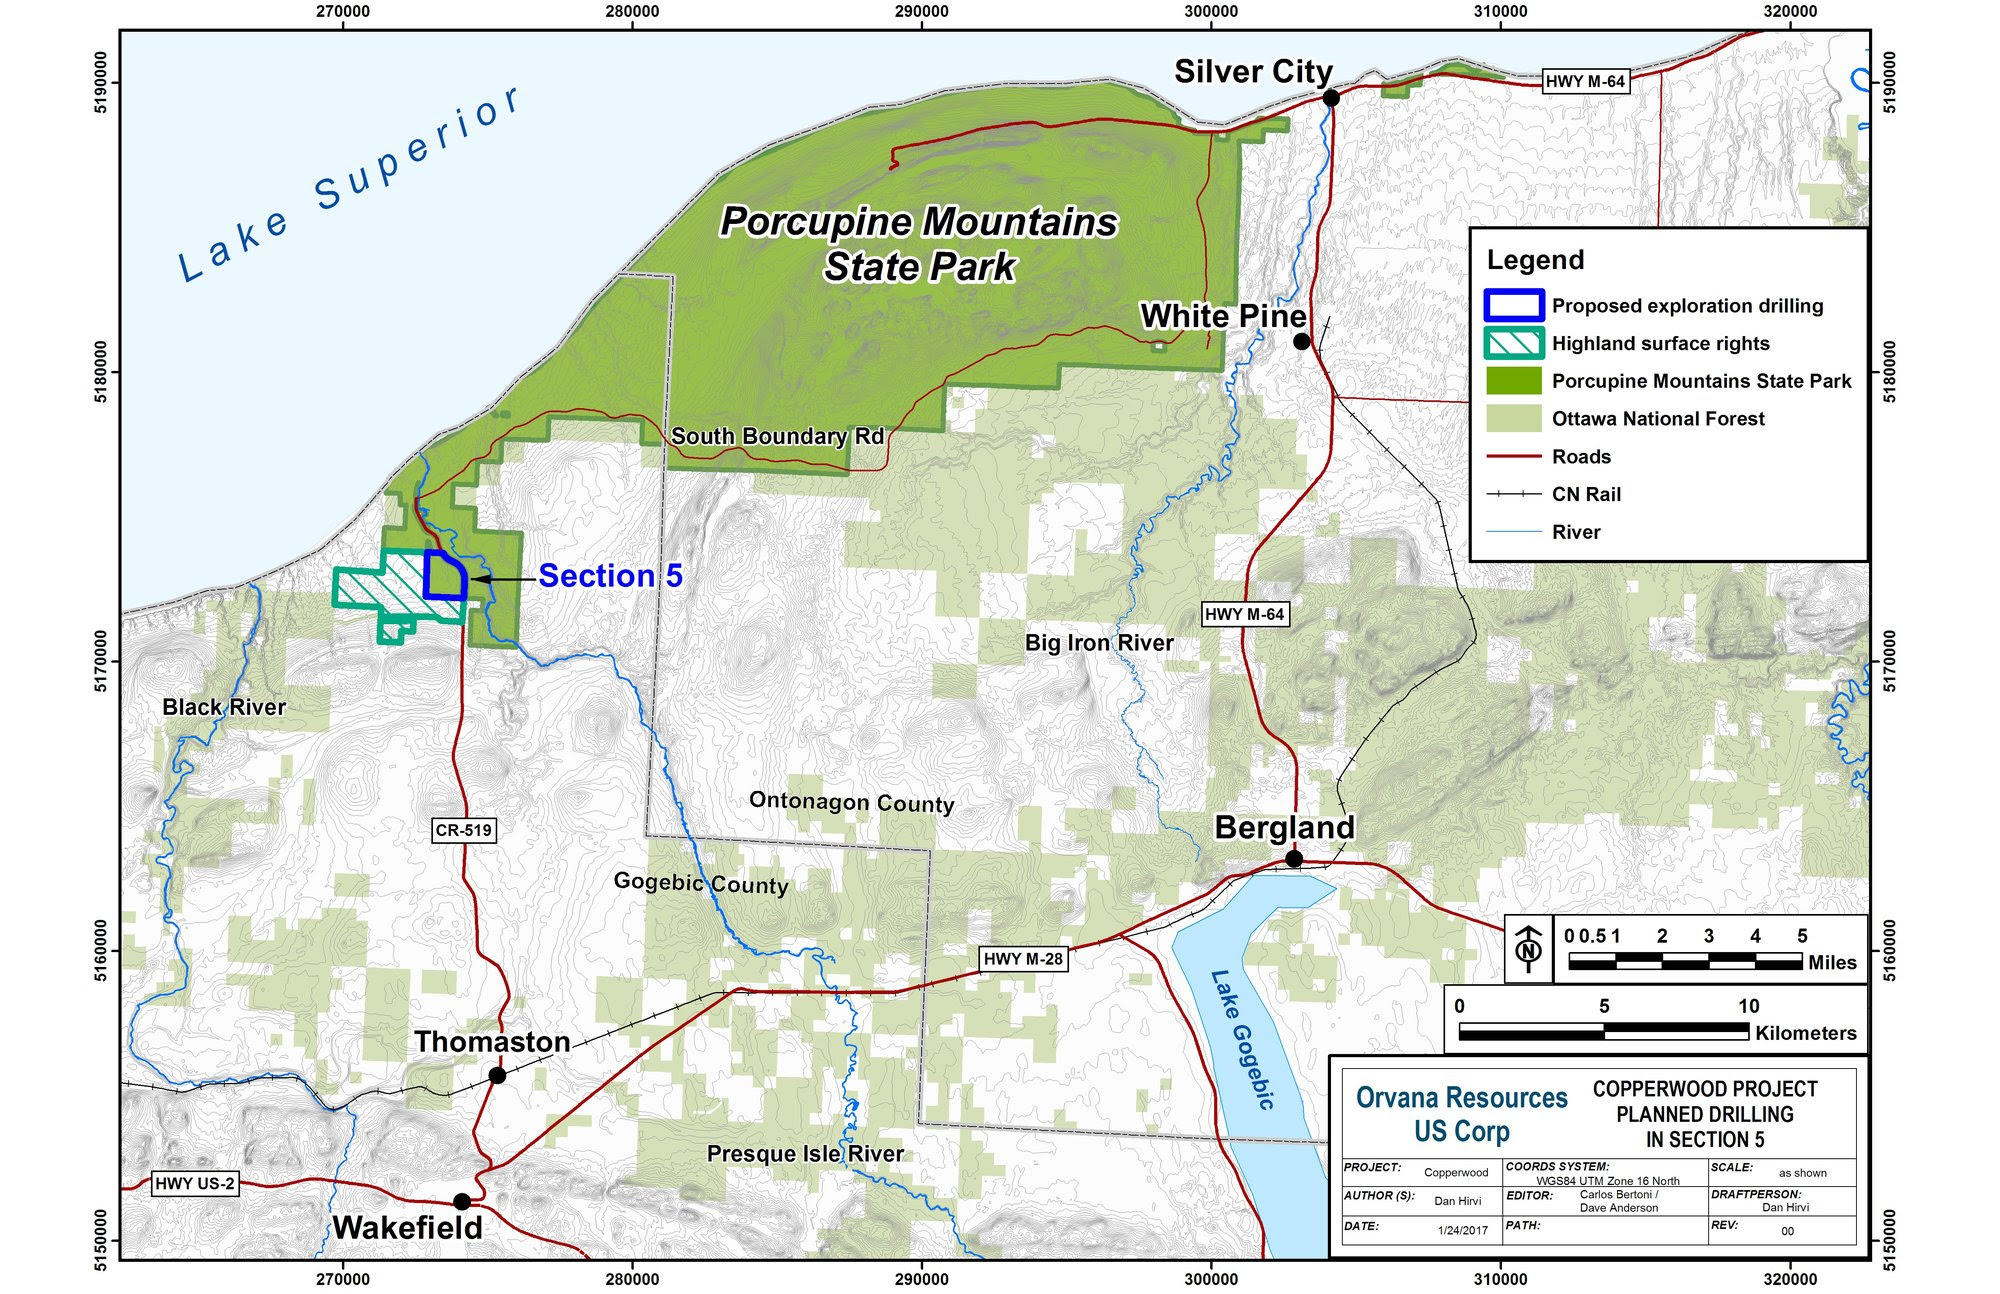 Exploratory Drilling Allowed In Porcupine Mountains